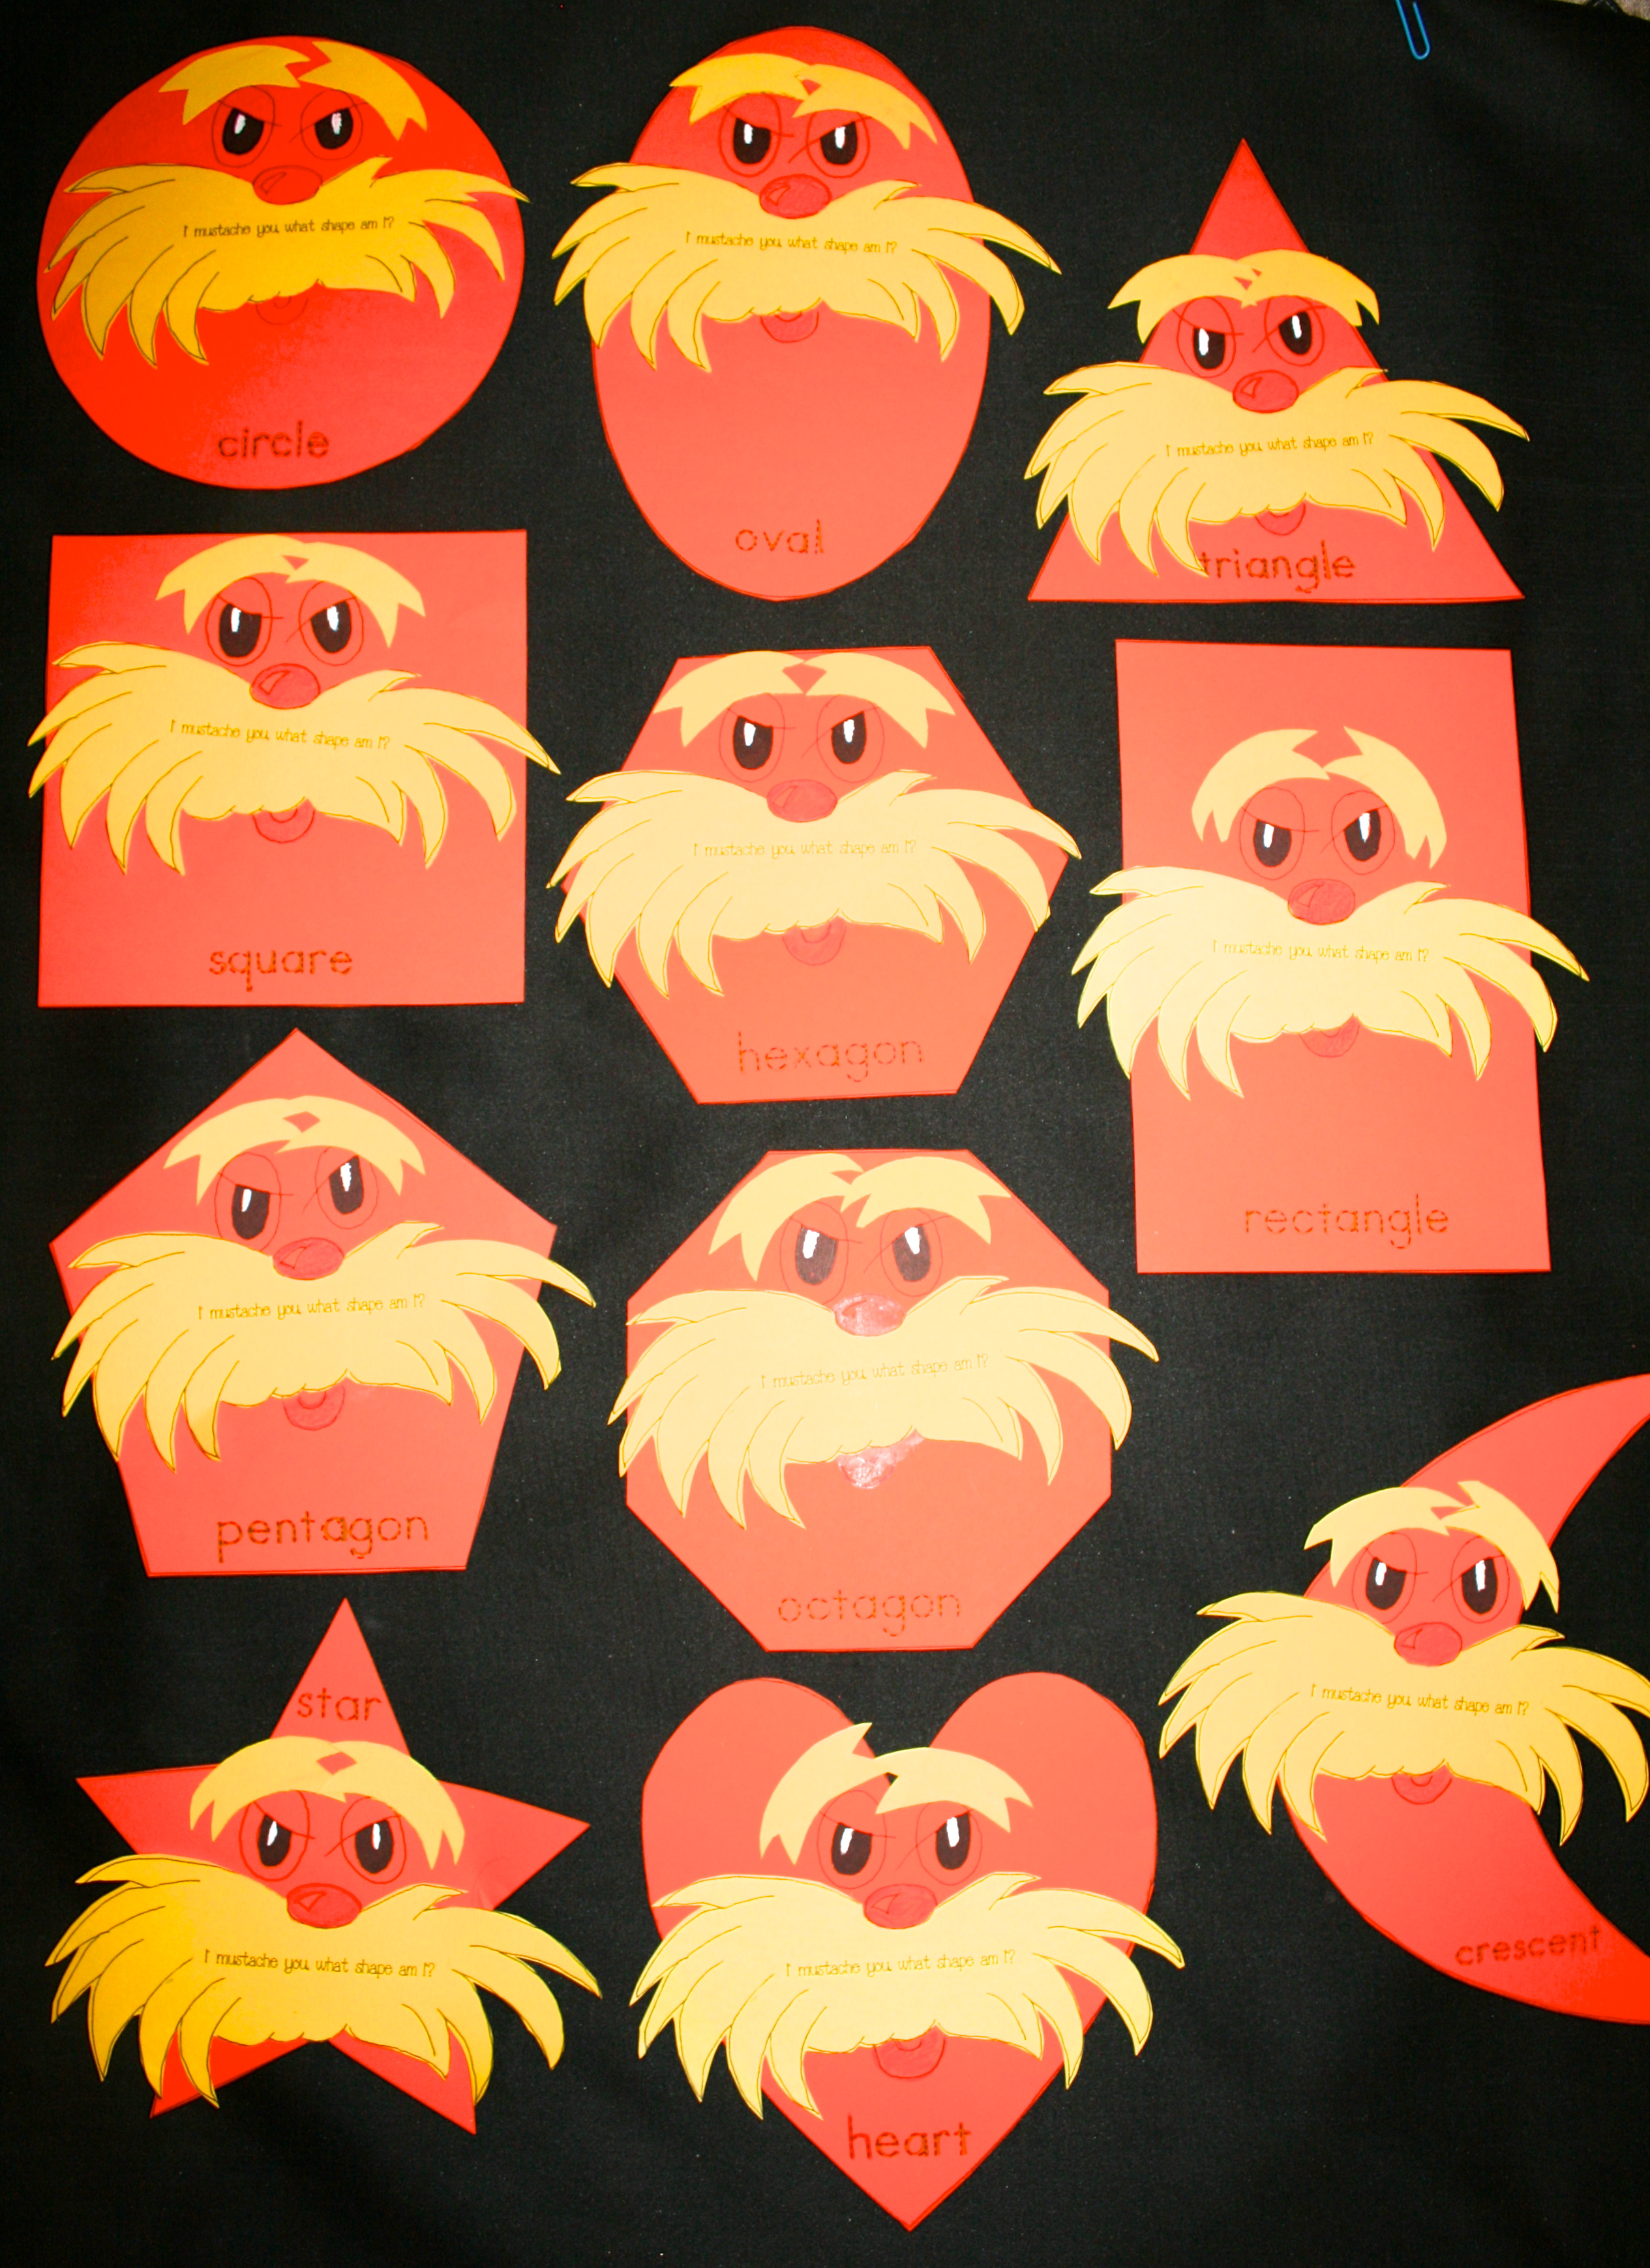 seuss activities, seuss lessons, lorax activities, lorax lessons, writing prompts for seuss, writing prompts for lorax, writing prompts for march,  , lorax mustache template, spring bulletin boards, march bulletin boards, seuss bulletin boards, truffula pencils, truffula trees, how to make a truffula tree, shape activities, shape bulletin boards,Lorax crafts, mustache activities